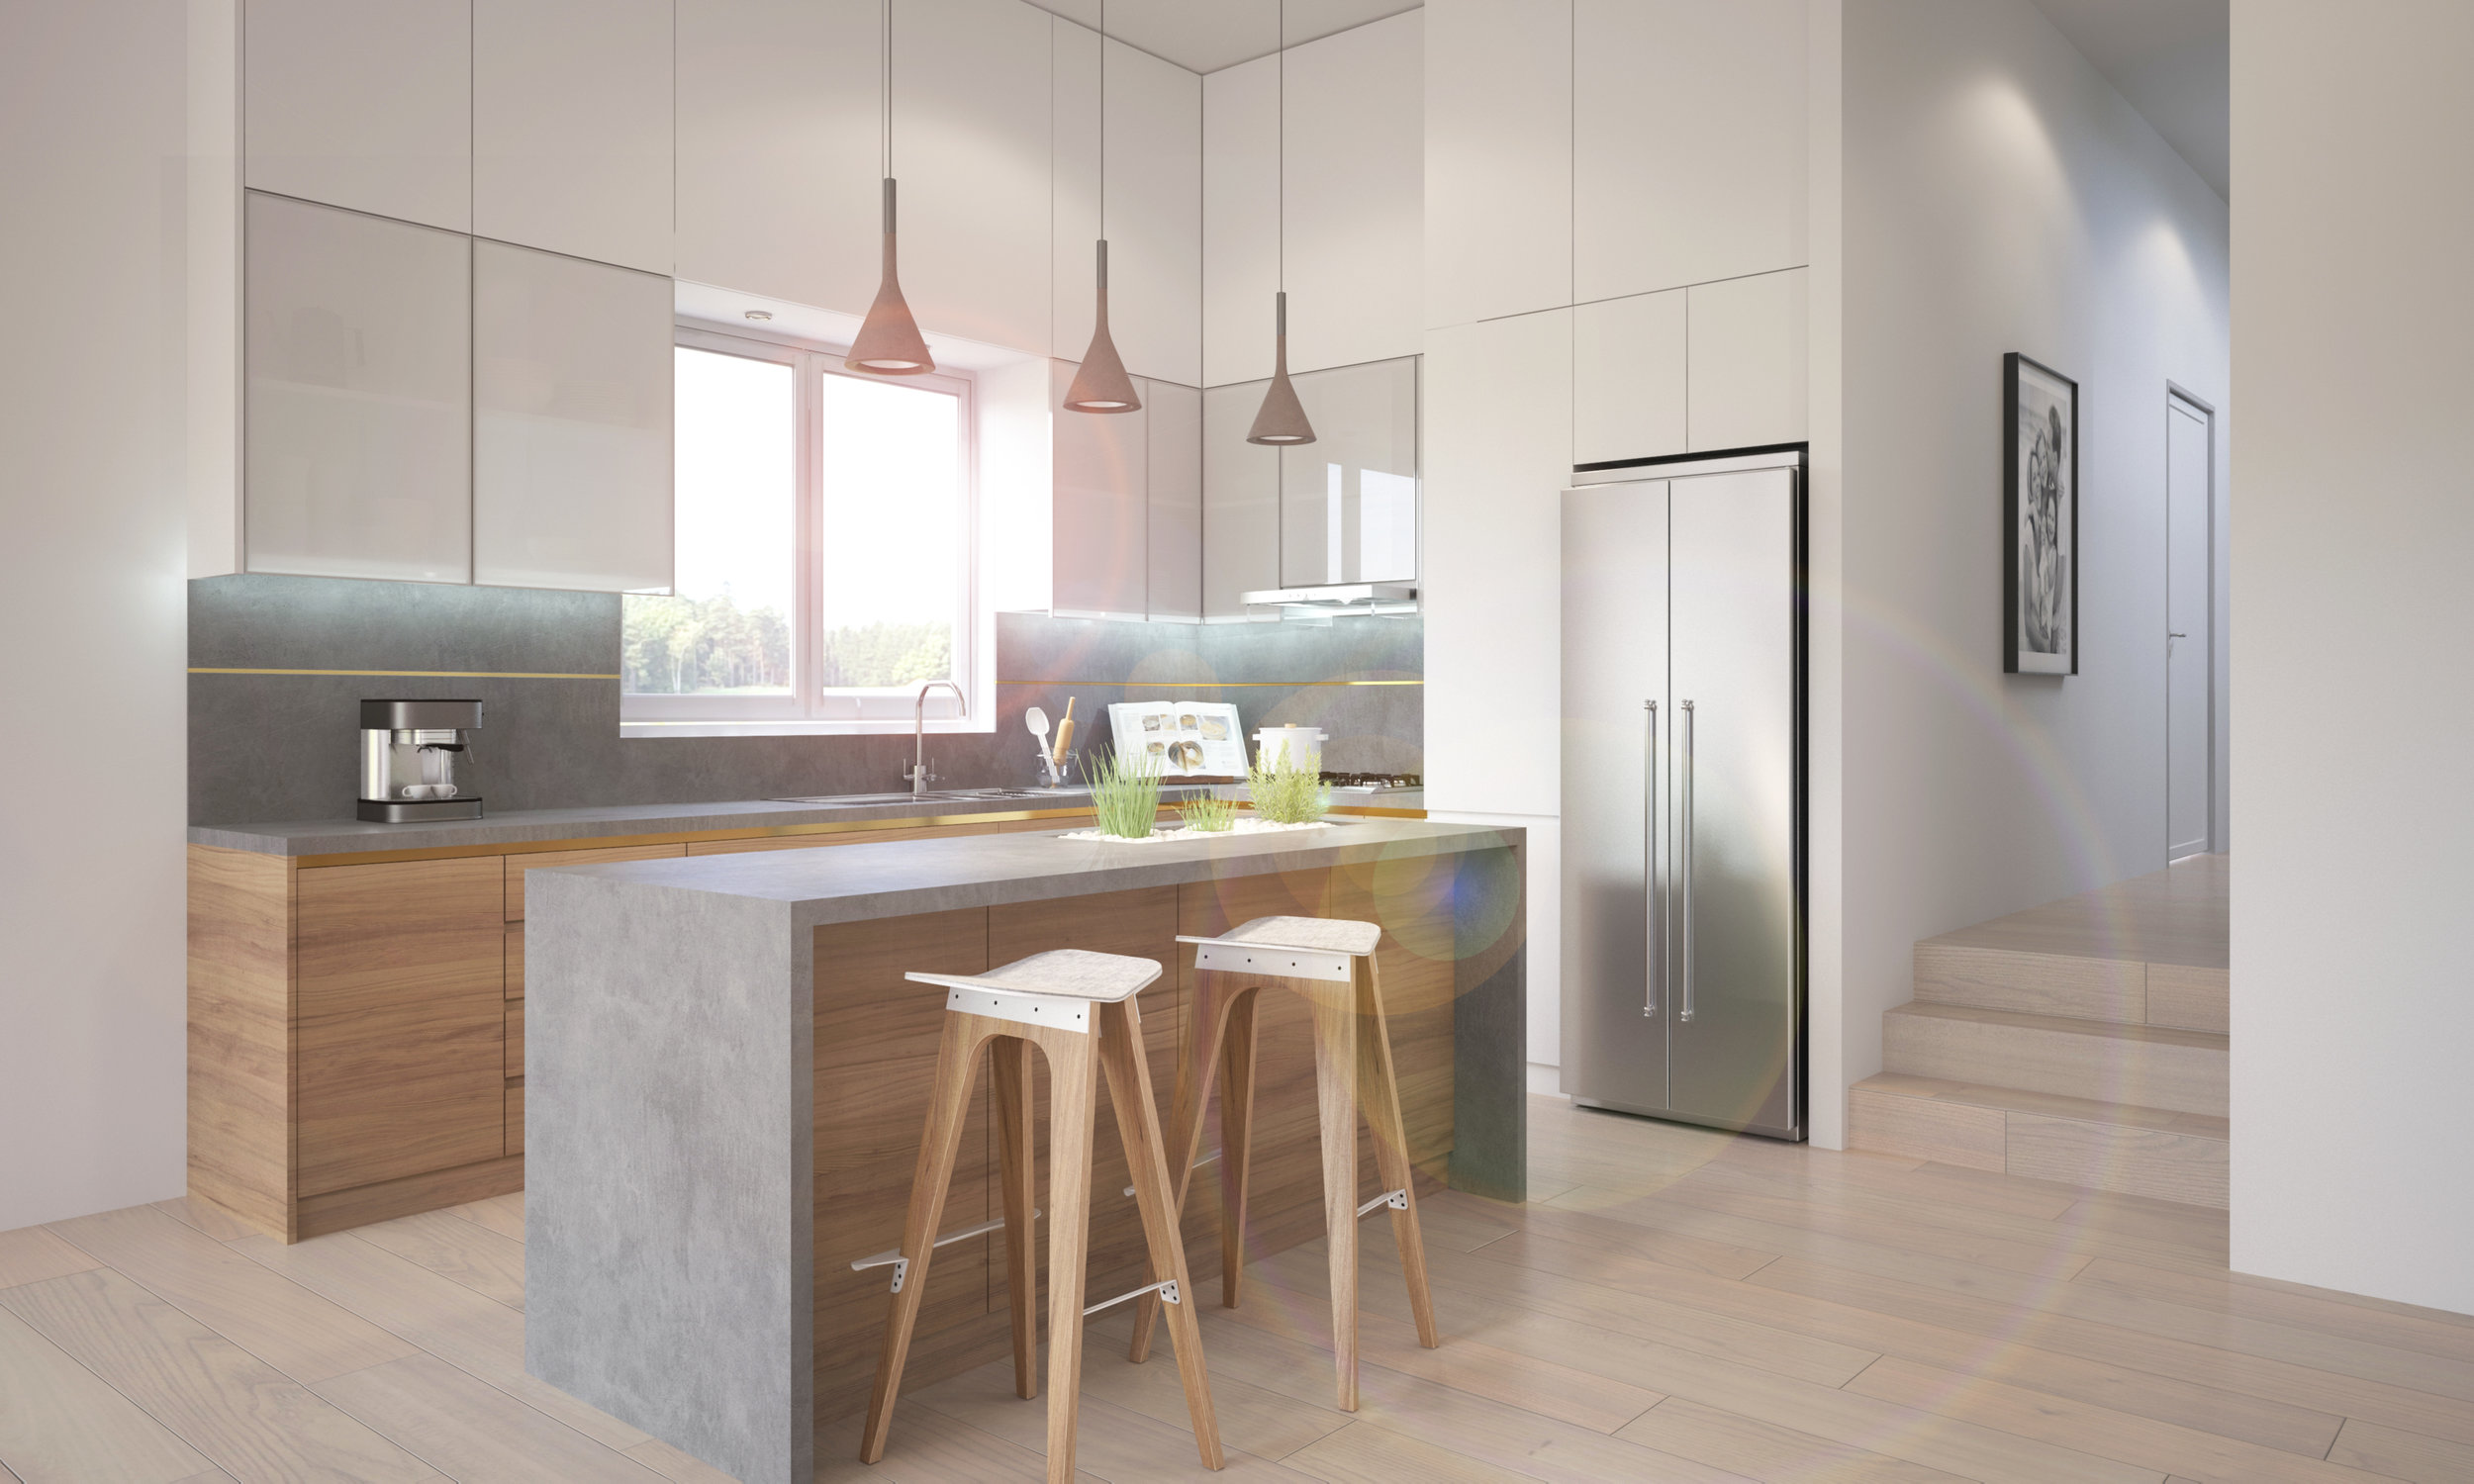 Copy of Residential kitchen area with custom joinery.